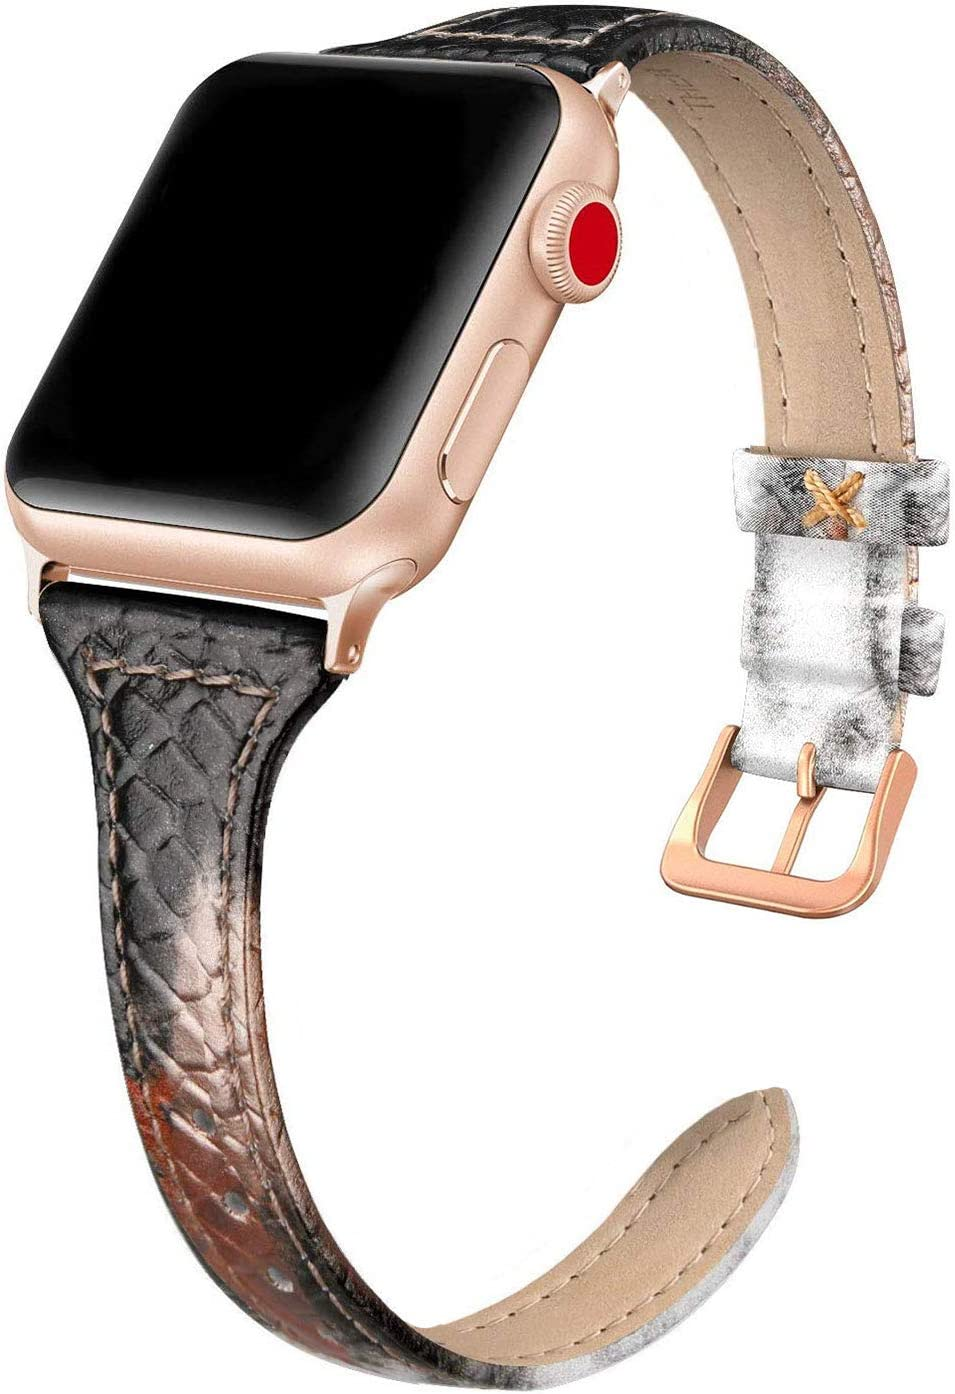 SWEES Leather Band Compatible for iWatch 38mm 40mm, Slim Thin Genuine Leather Strap Compatible for iWatch Series 6, 5, 4, 3, 2, 1, SE, Sport & Edition Women, Snake Black/Gold